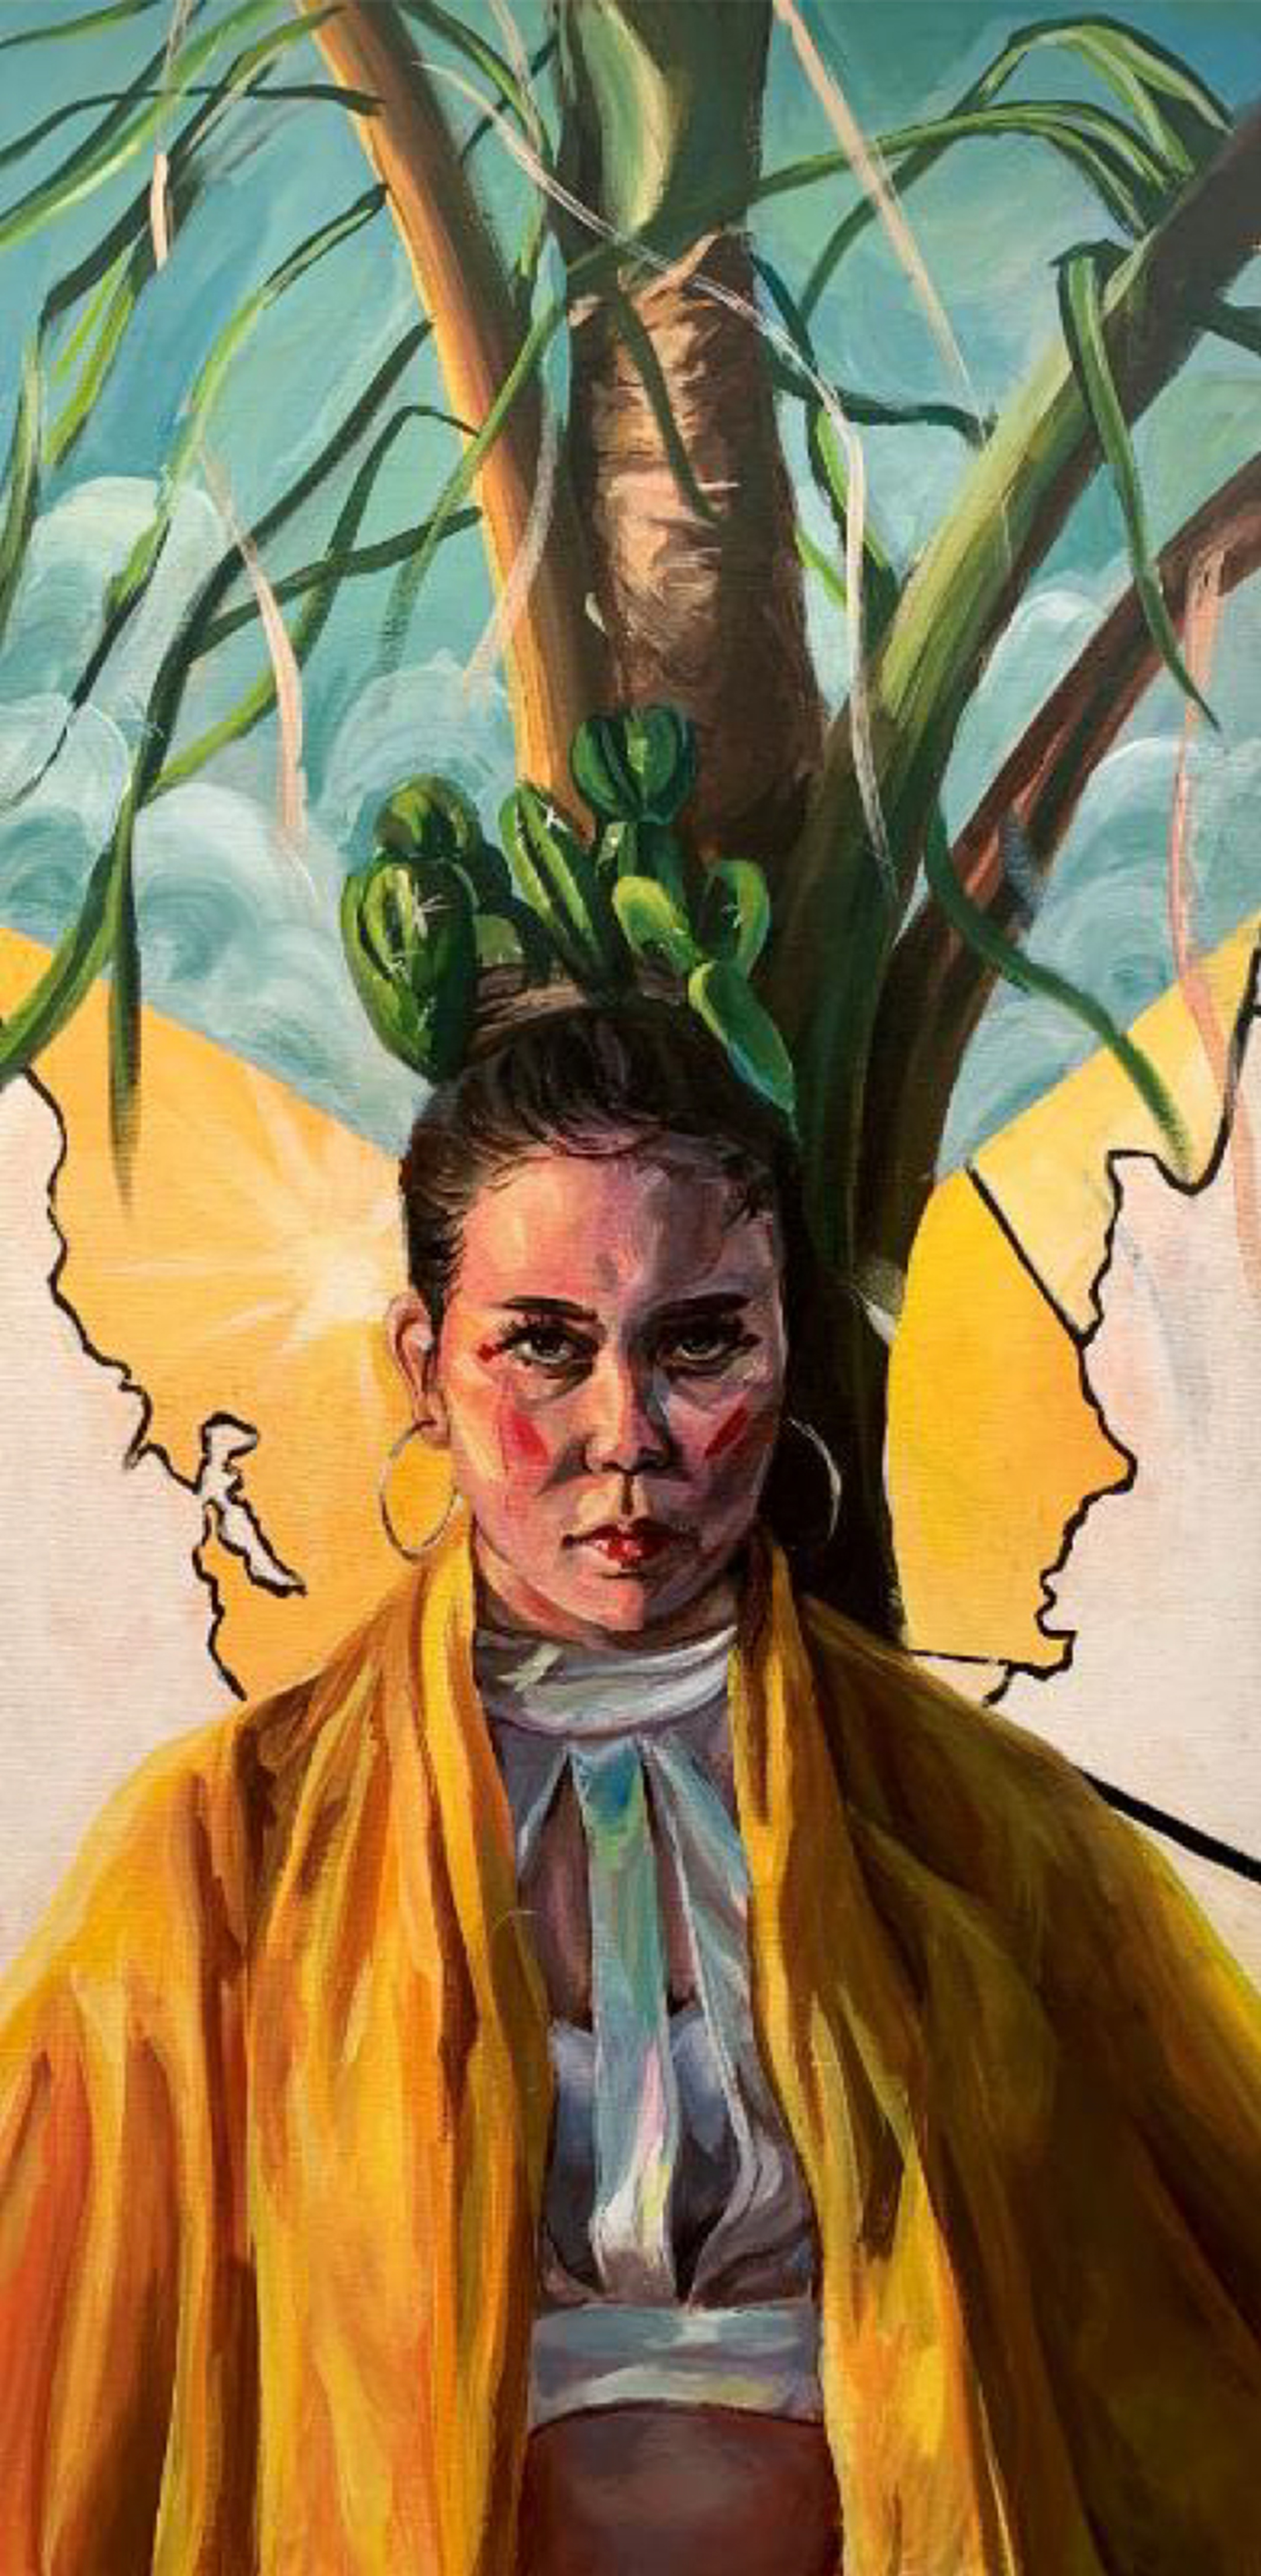 painting of an indigenous woman in yellow staring at the viewer, with a tree behind her